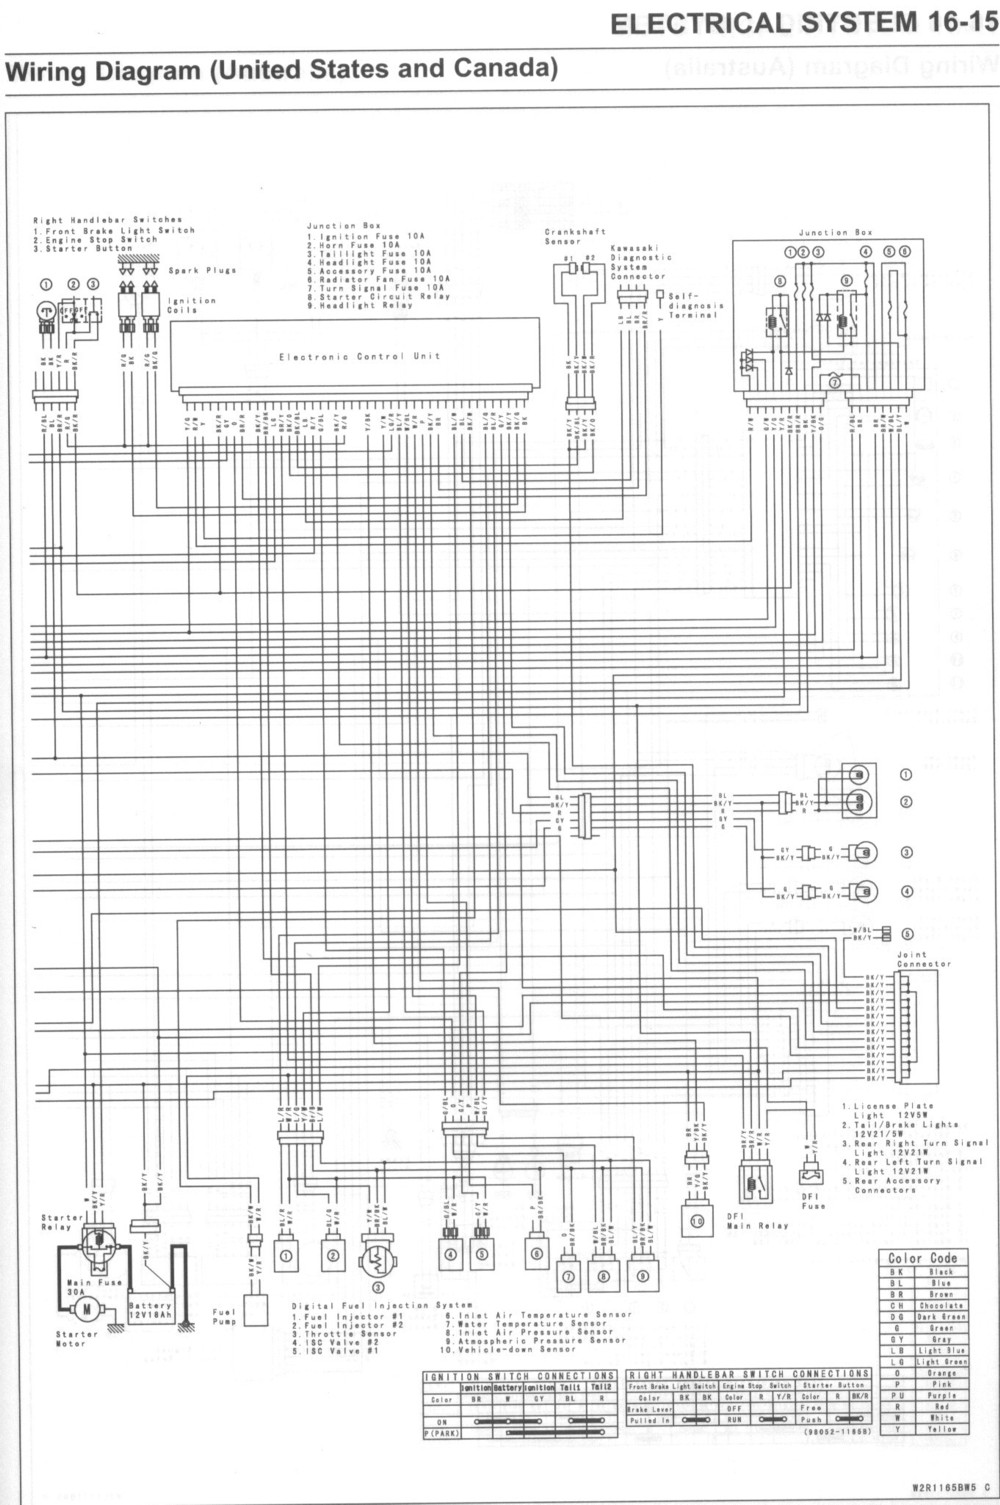 vulcan 1500 wiring diagram all kind of wiring diagrams. Black Bedroom Furniture Sets. Home Design Ideas